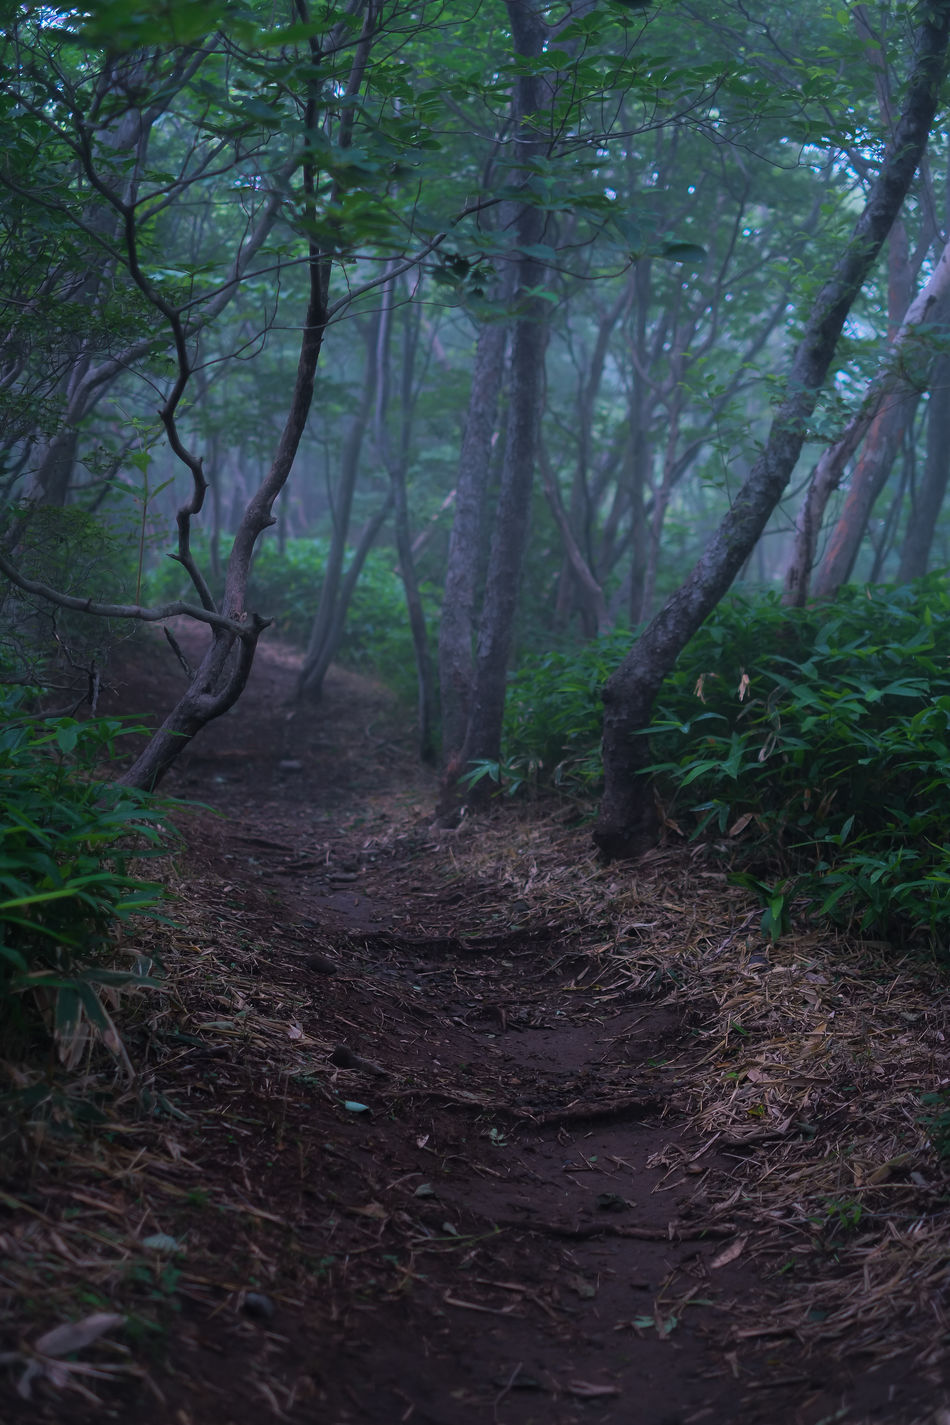 Nasu highlands, Tochigi, Japan. Autumn Beauty In Nature Branch Day Fog Forest Fujifilm Fujifilm_xseries Idyllic Japan Landscape Leaf Nature Nature Reserve No People Outdoor Pursuit Outdoors Scenics Tranquil Scene Tranquility Tree Tree Area Tree Trunk WoodLand